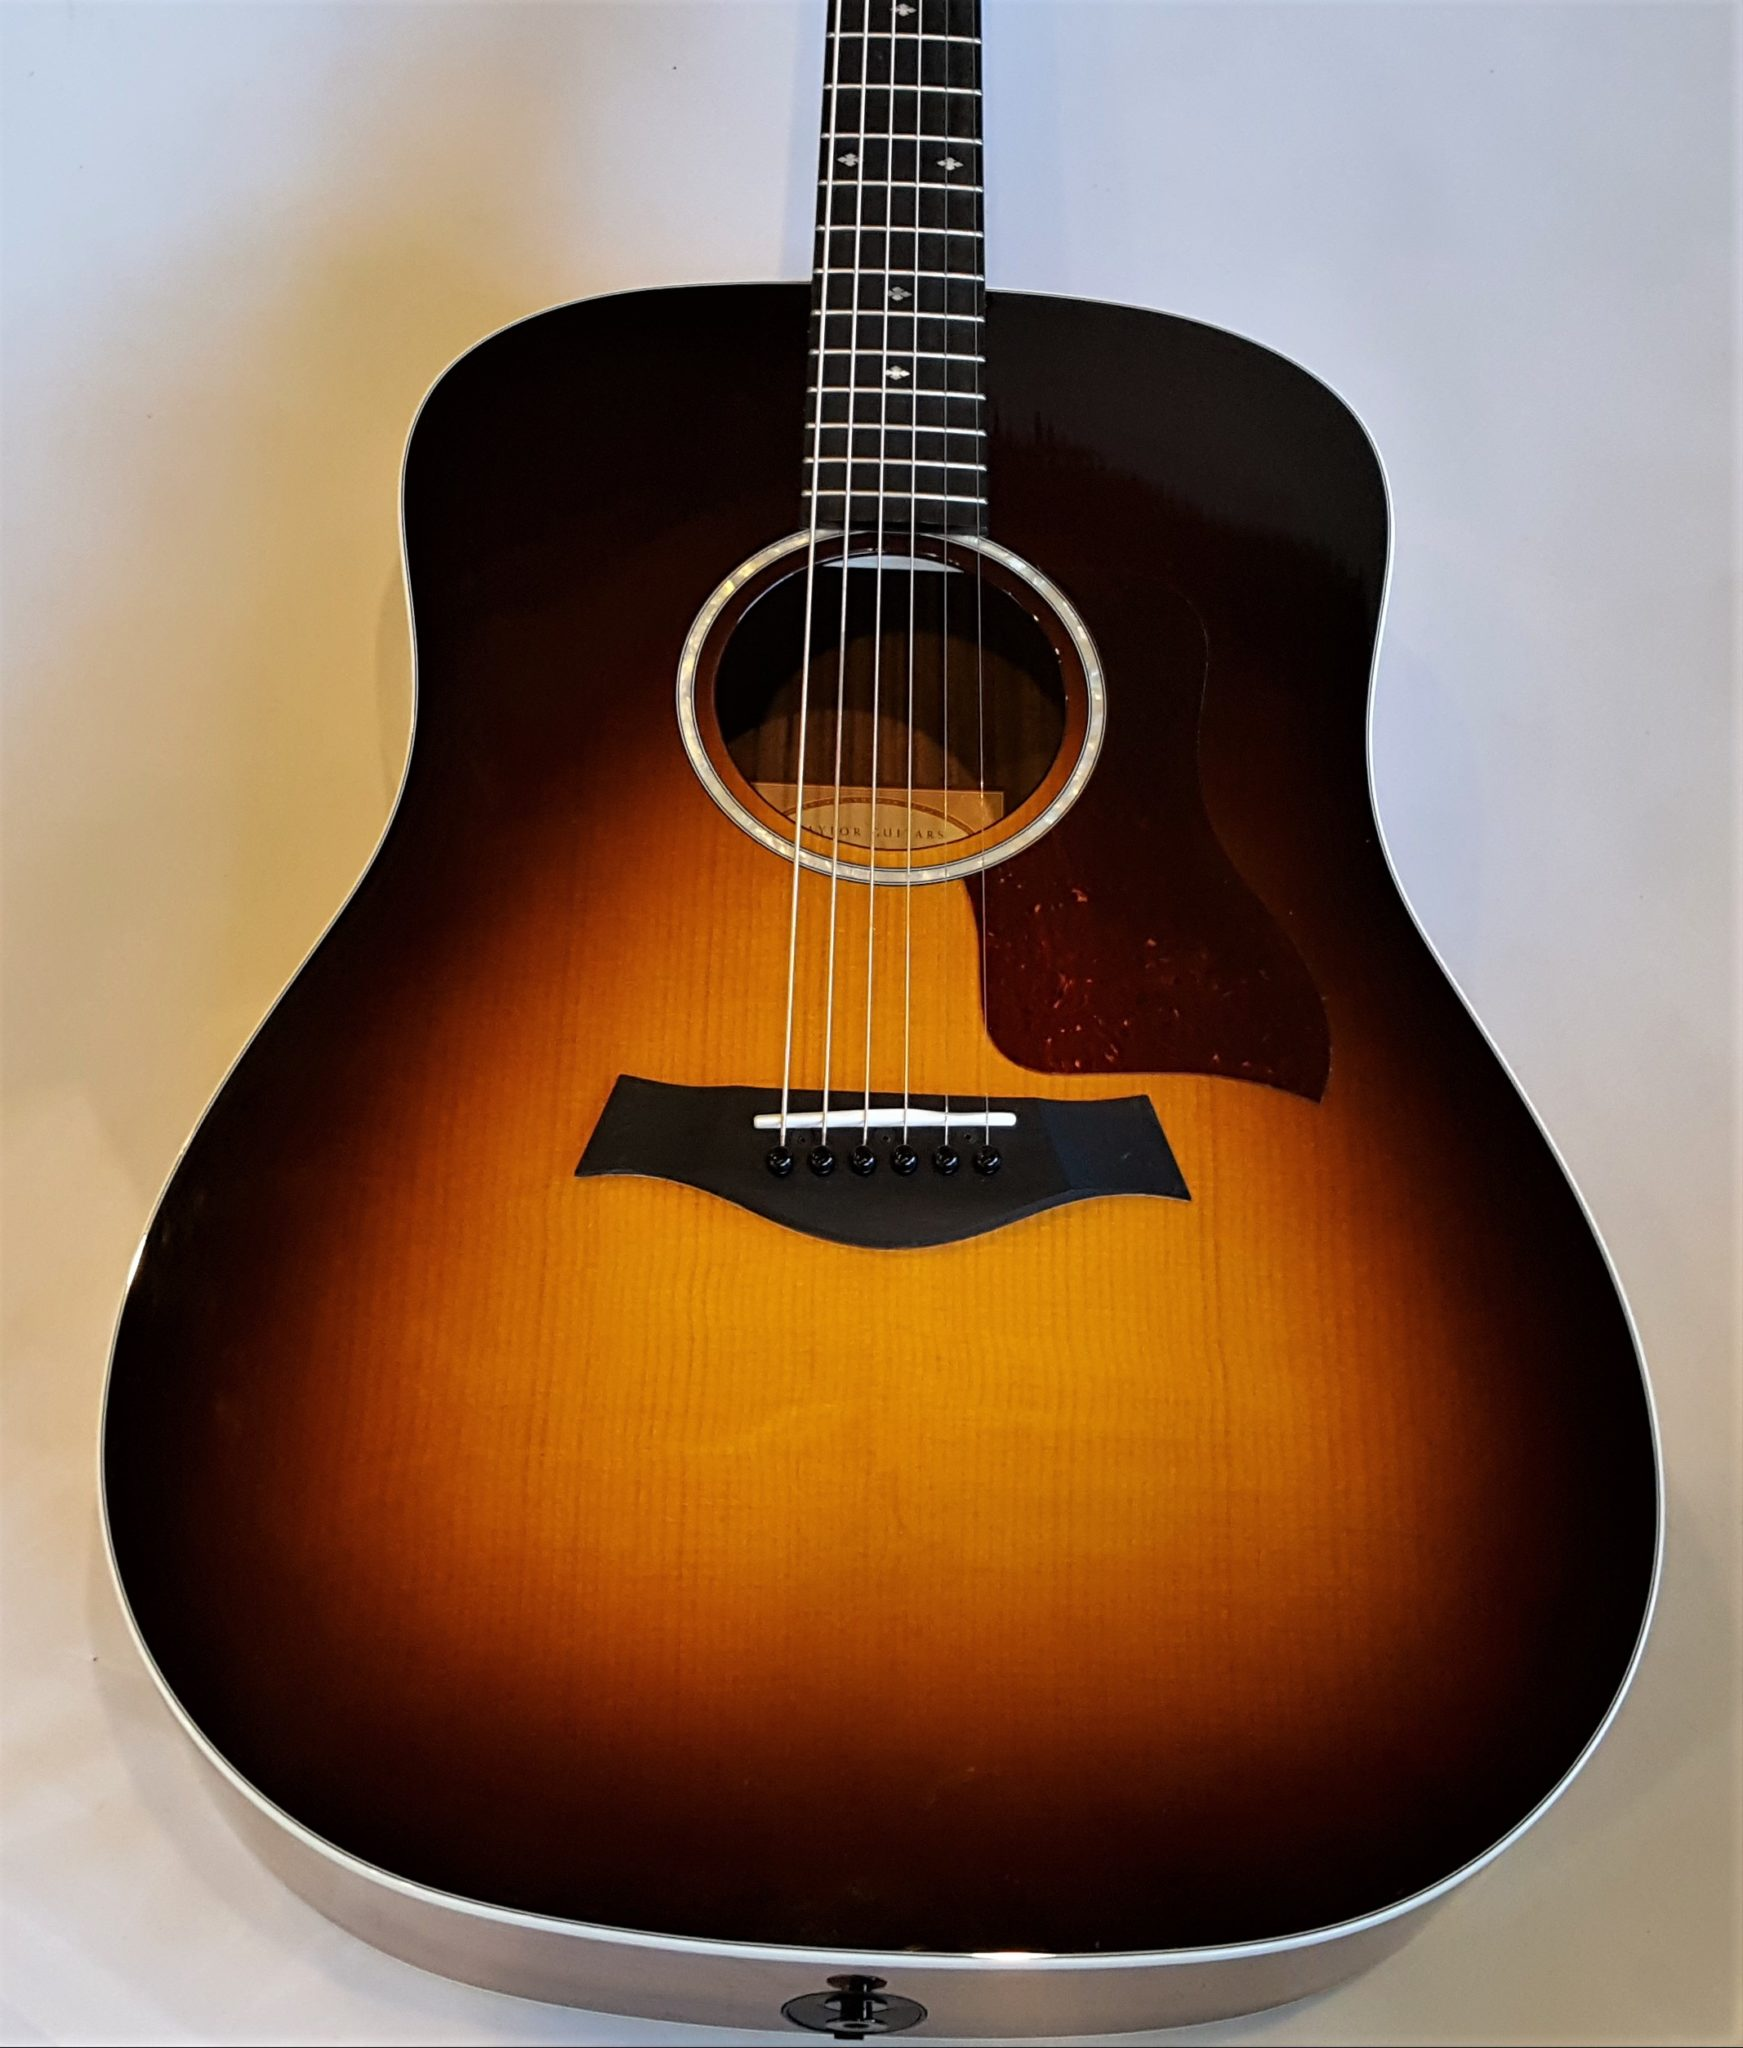 Taylor 210e-SB Deluxe 2016 Sunburst Acoustic Electric Guitar